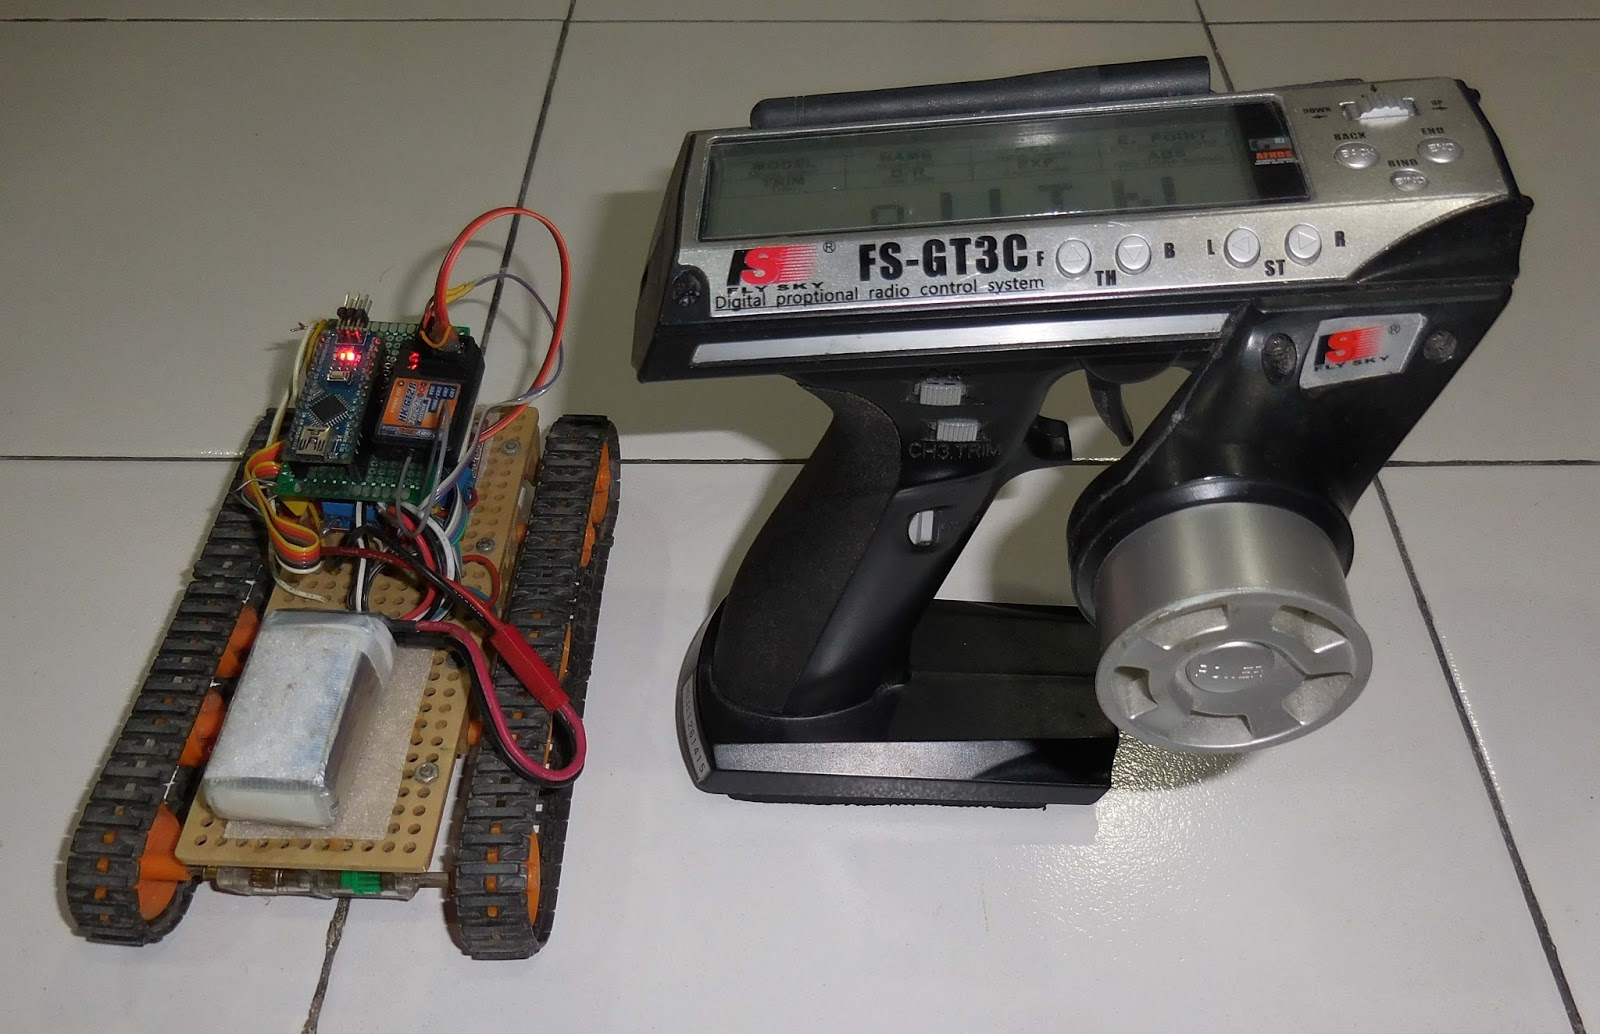 Hobby Witch: How to Control Tracked Robot Via 3-Channel RC